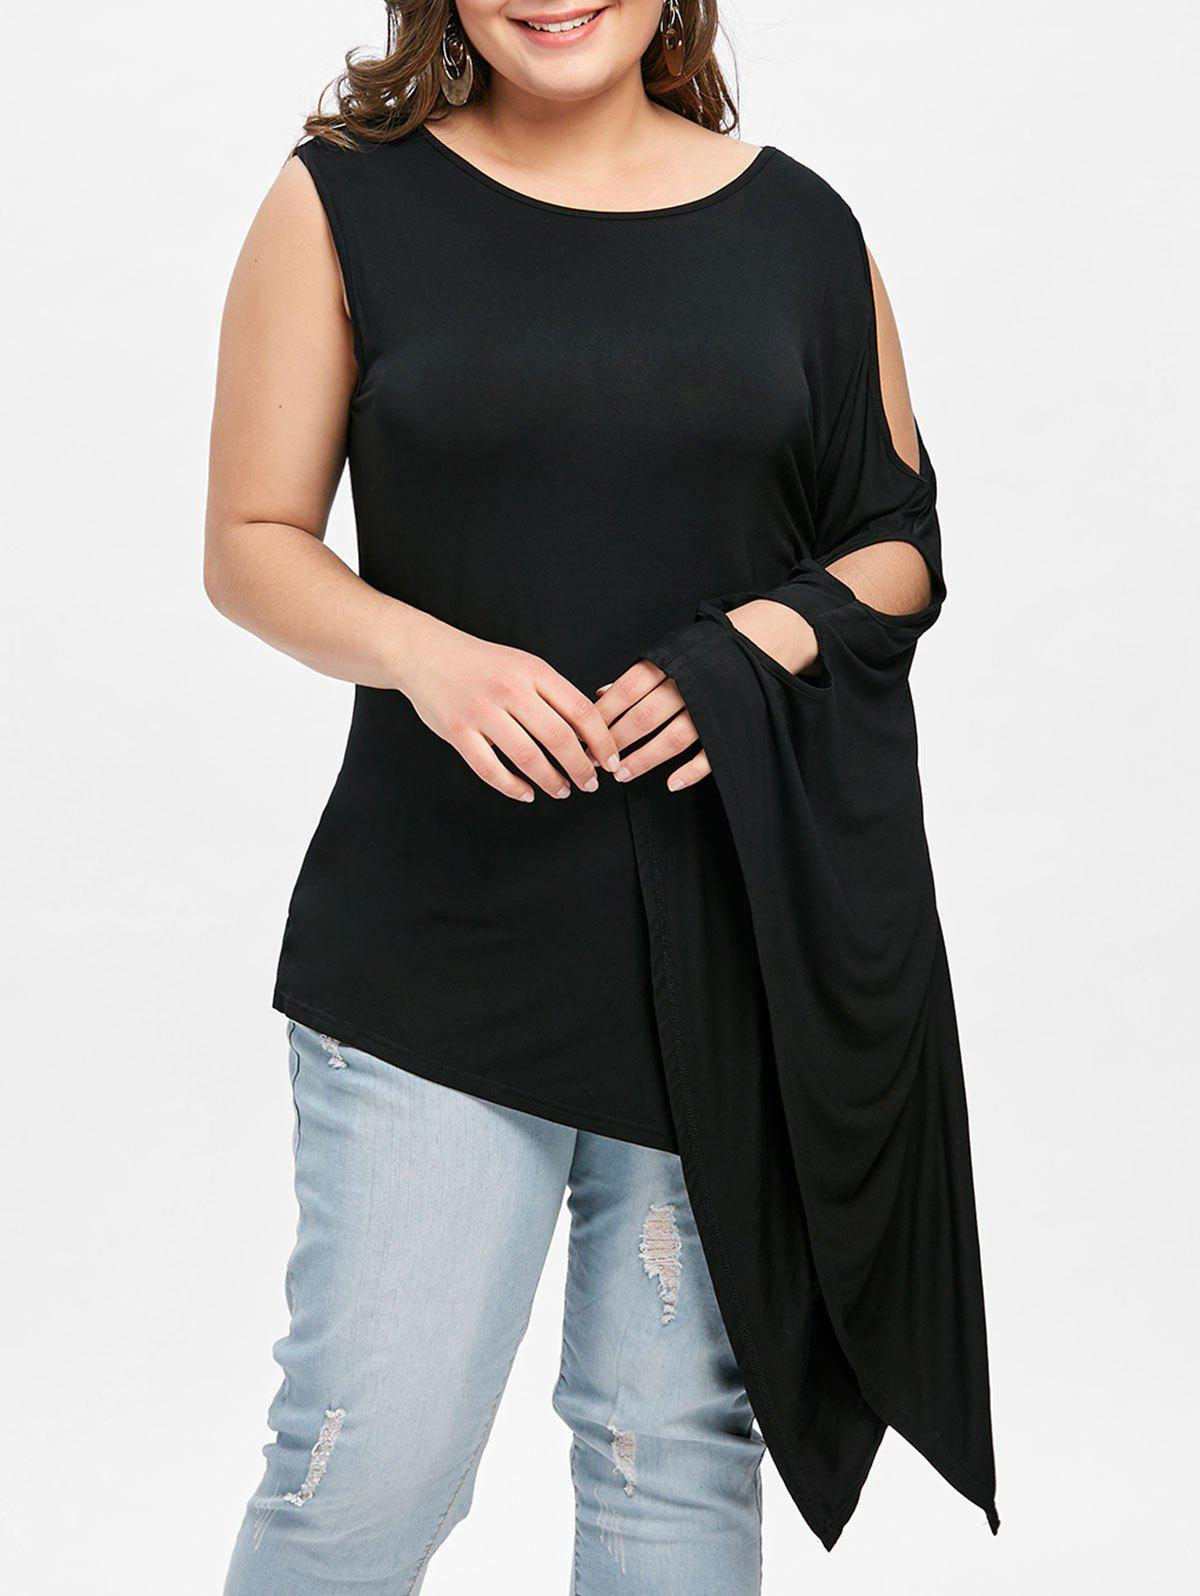 Fancy Plus Size Batwing Sleeve One Shoulder Tee